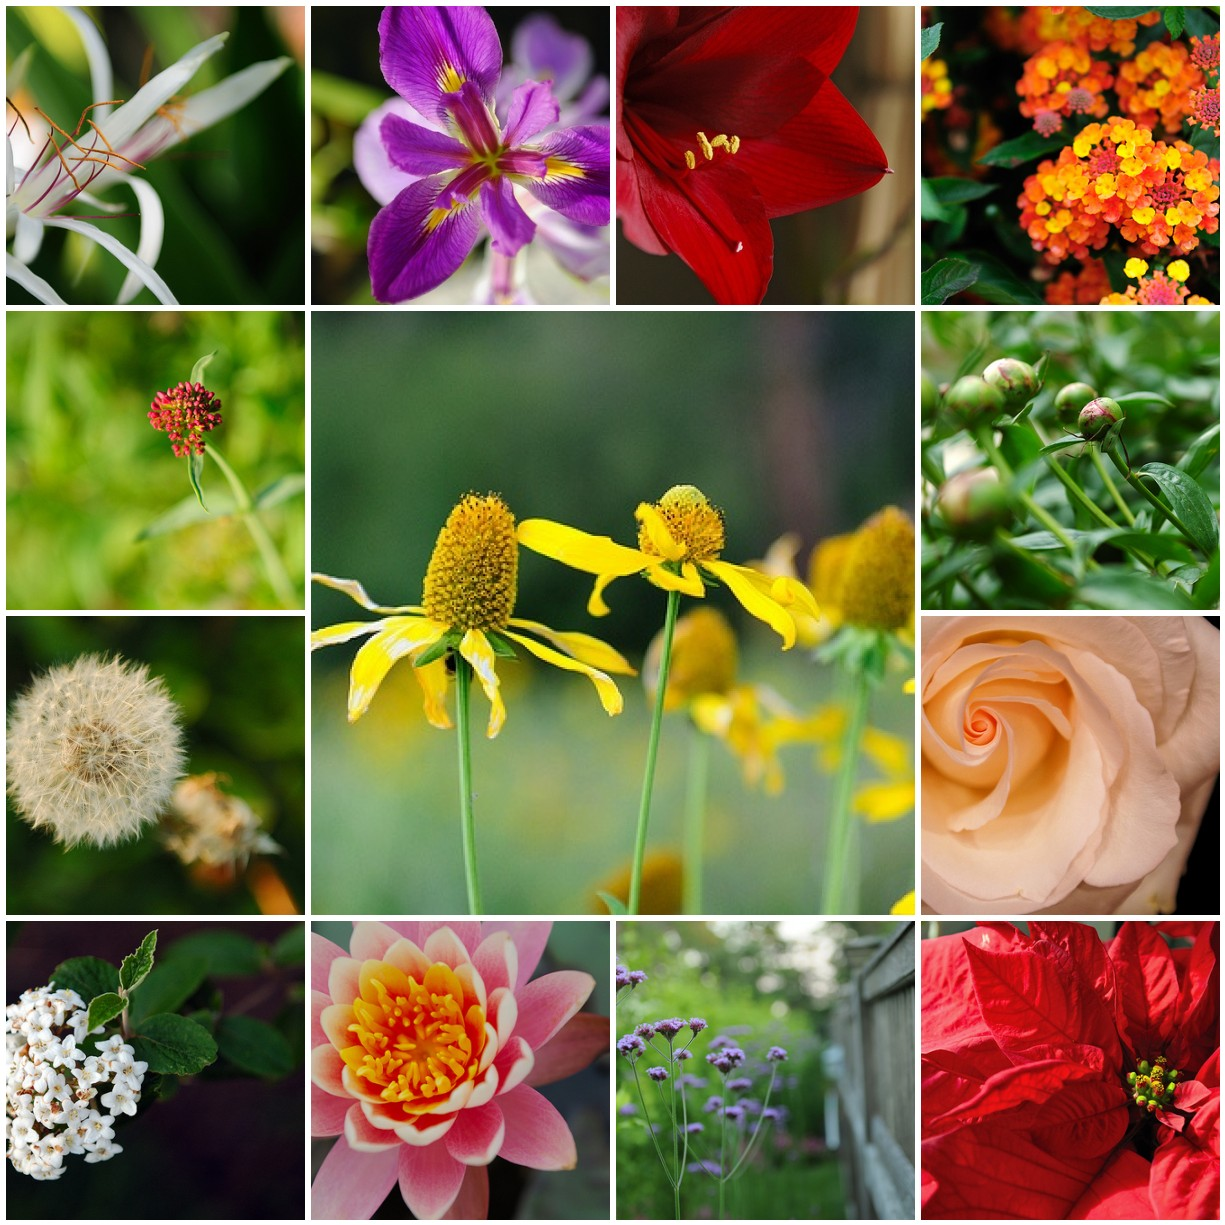 Mosaic Monday - Flower Collection